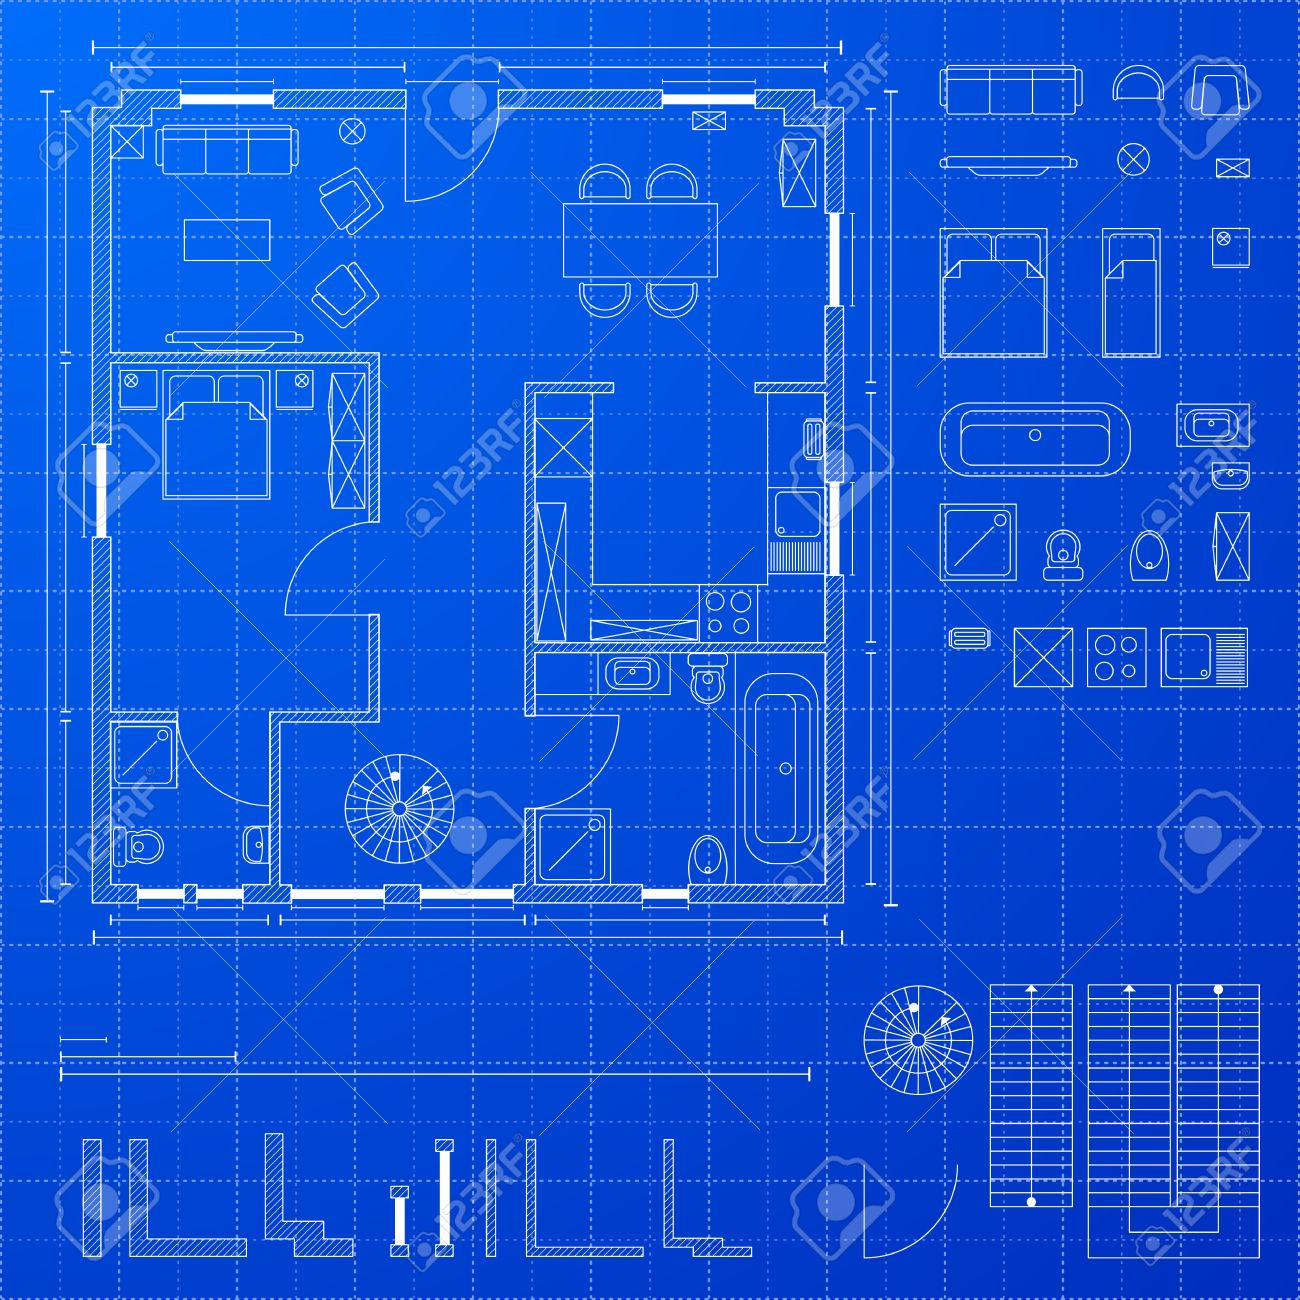 Vector detailed illustration of a blueprint floorplan with various design elements